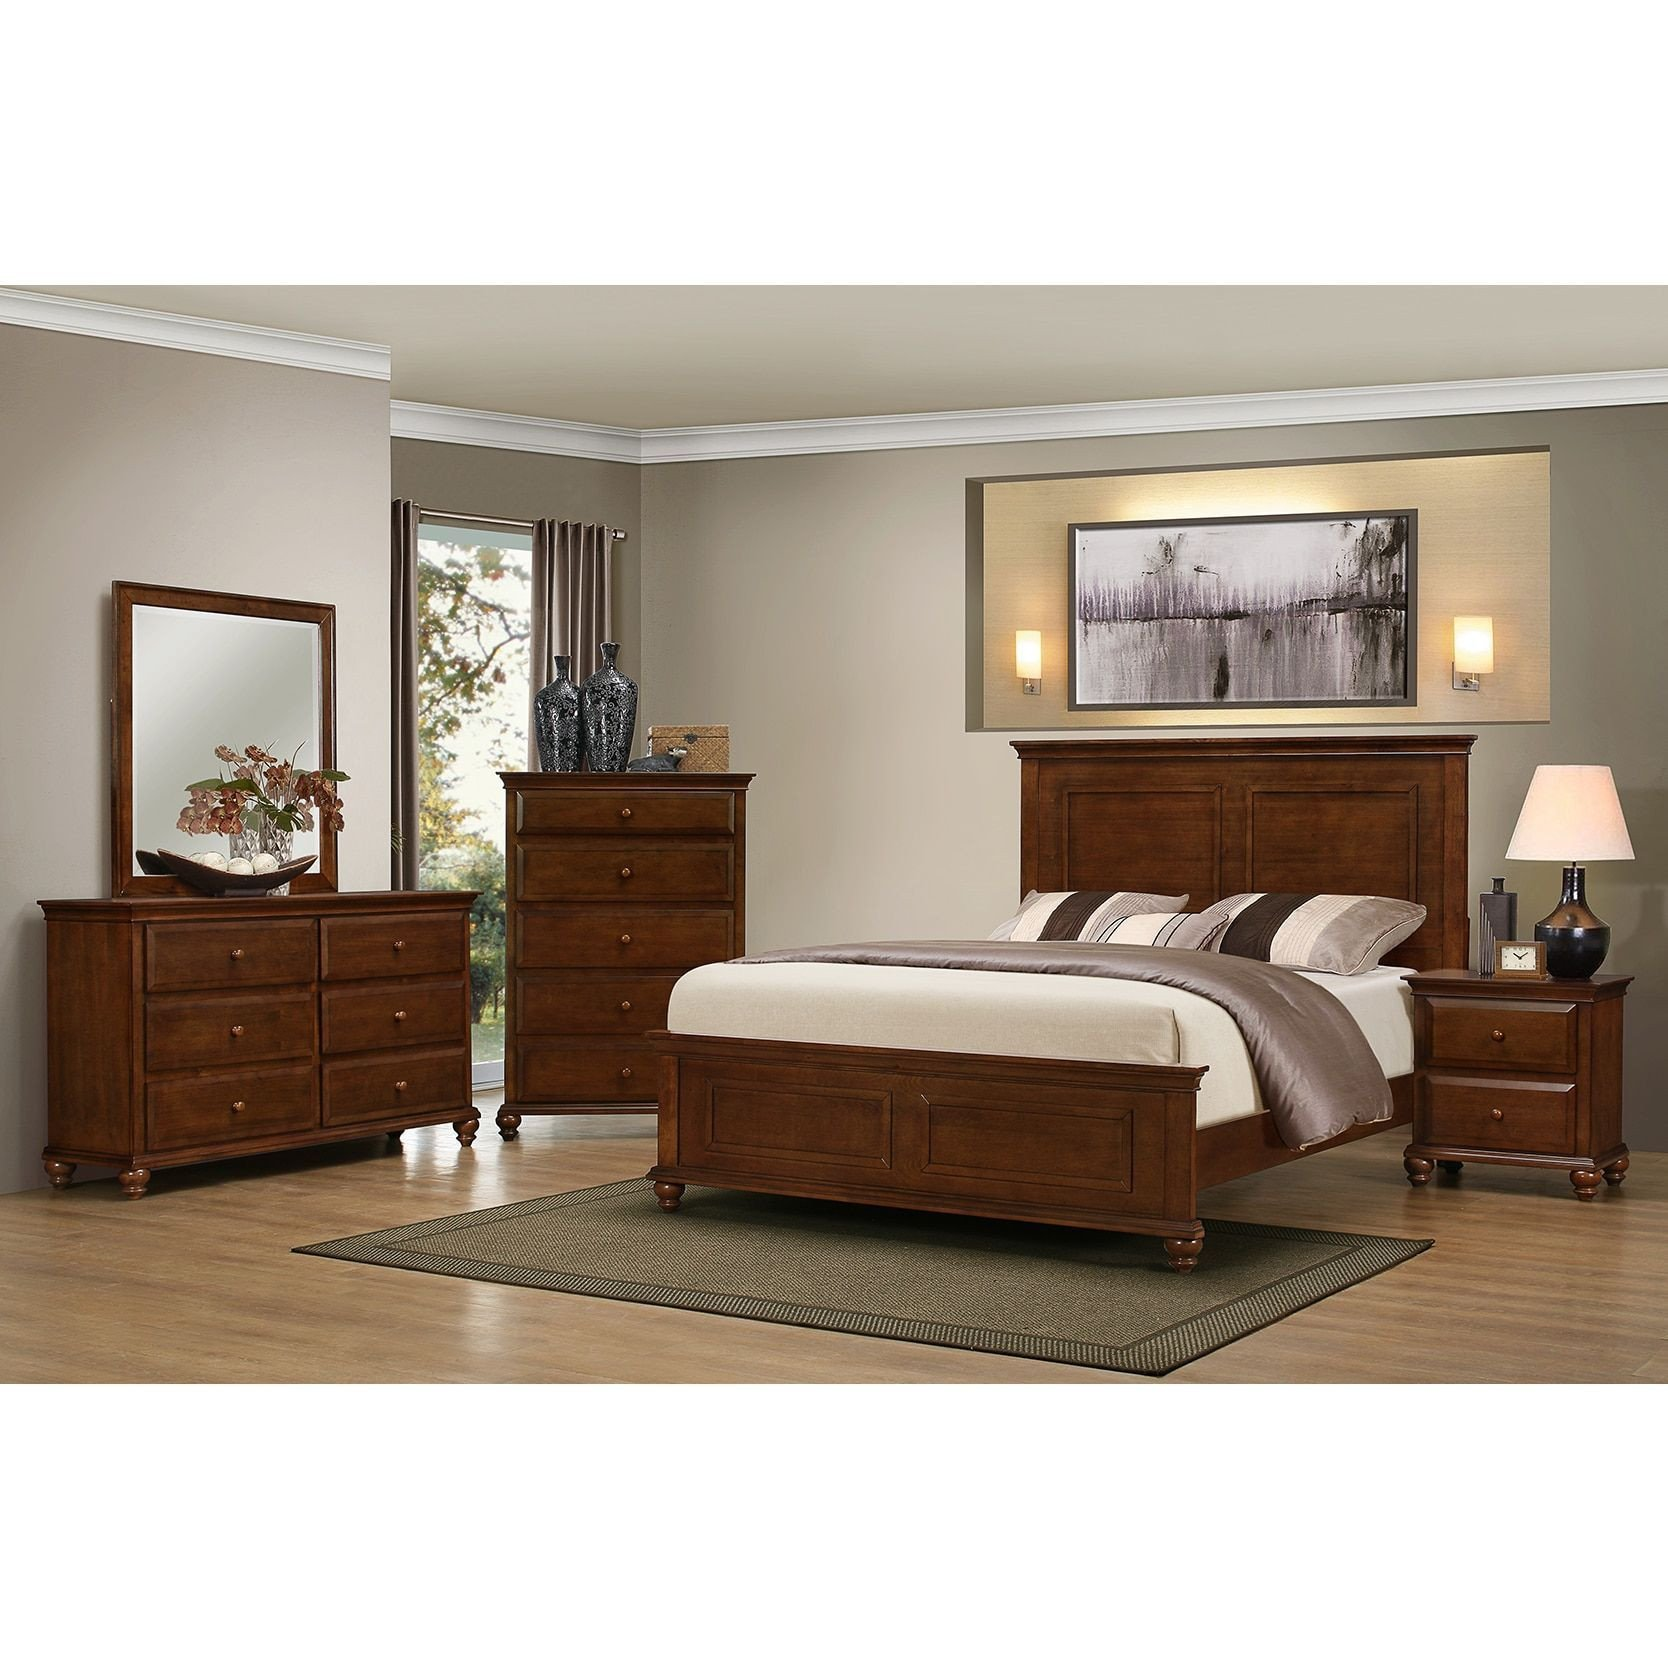 3 Pice Bedroom Set Beautiful Simmons Casegoods Raleigh Collection 3 Piece Queen King